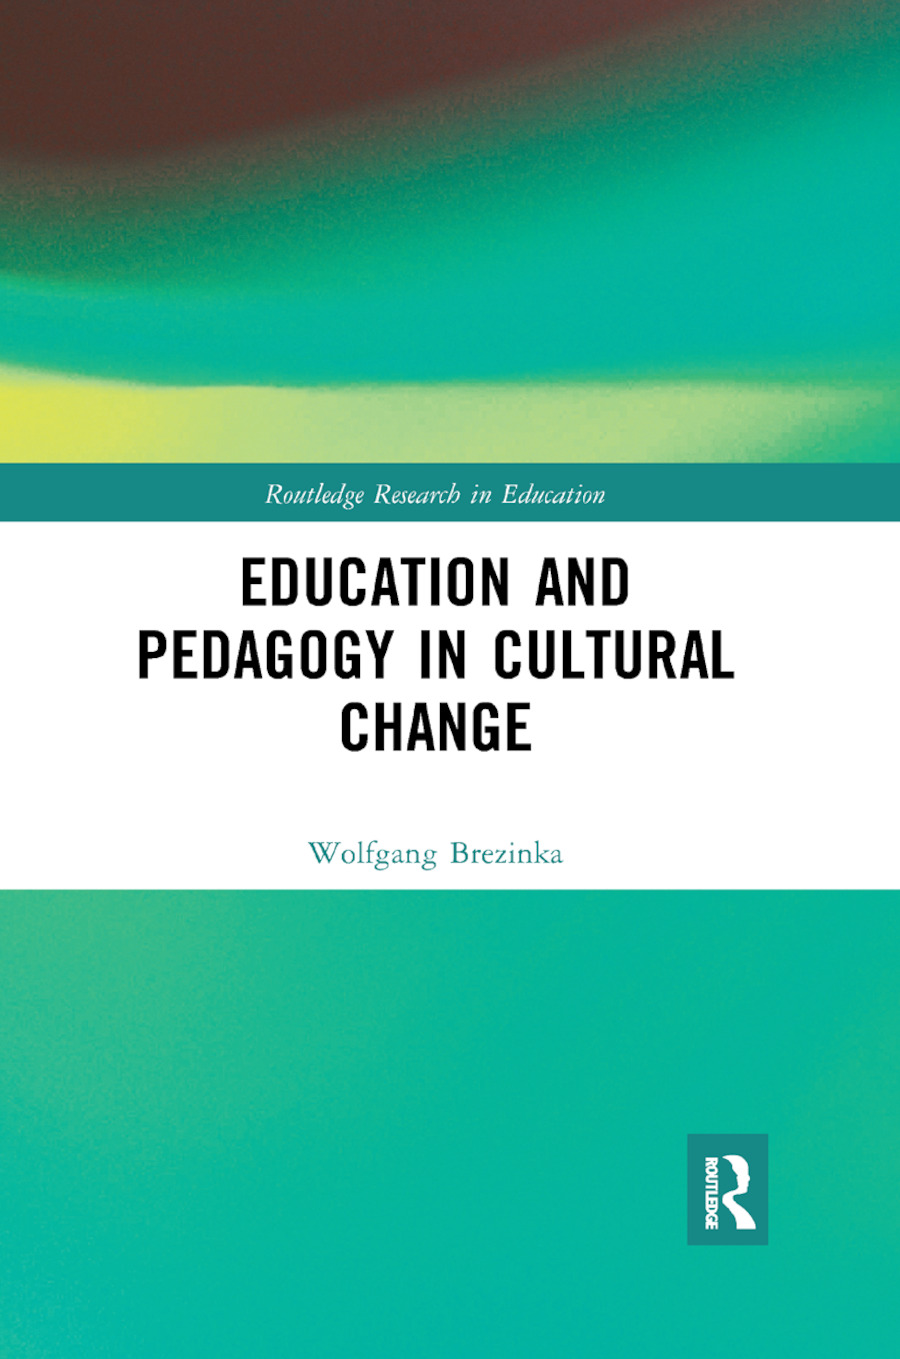 Education and Pedagogy in Cultural Change: 1st Edition (Paperback) book cover